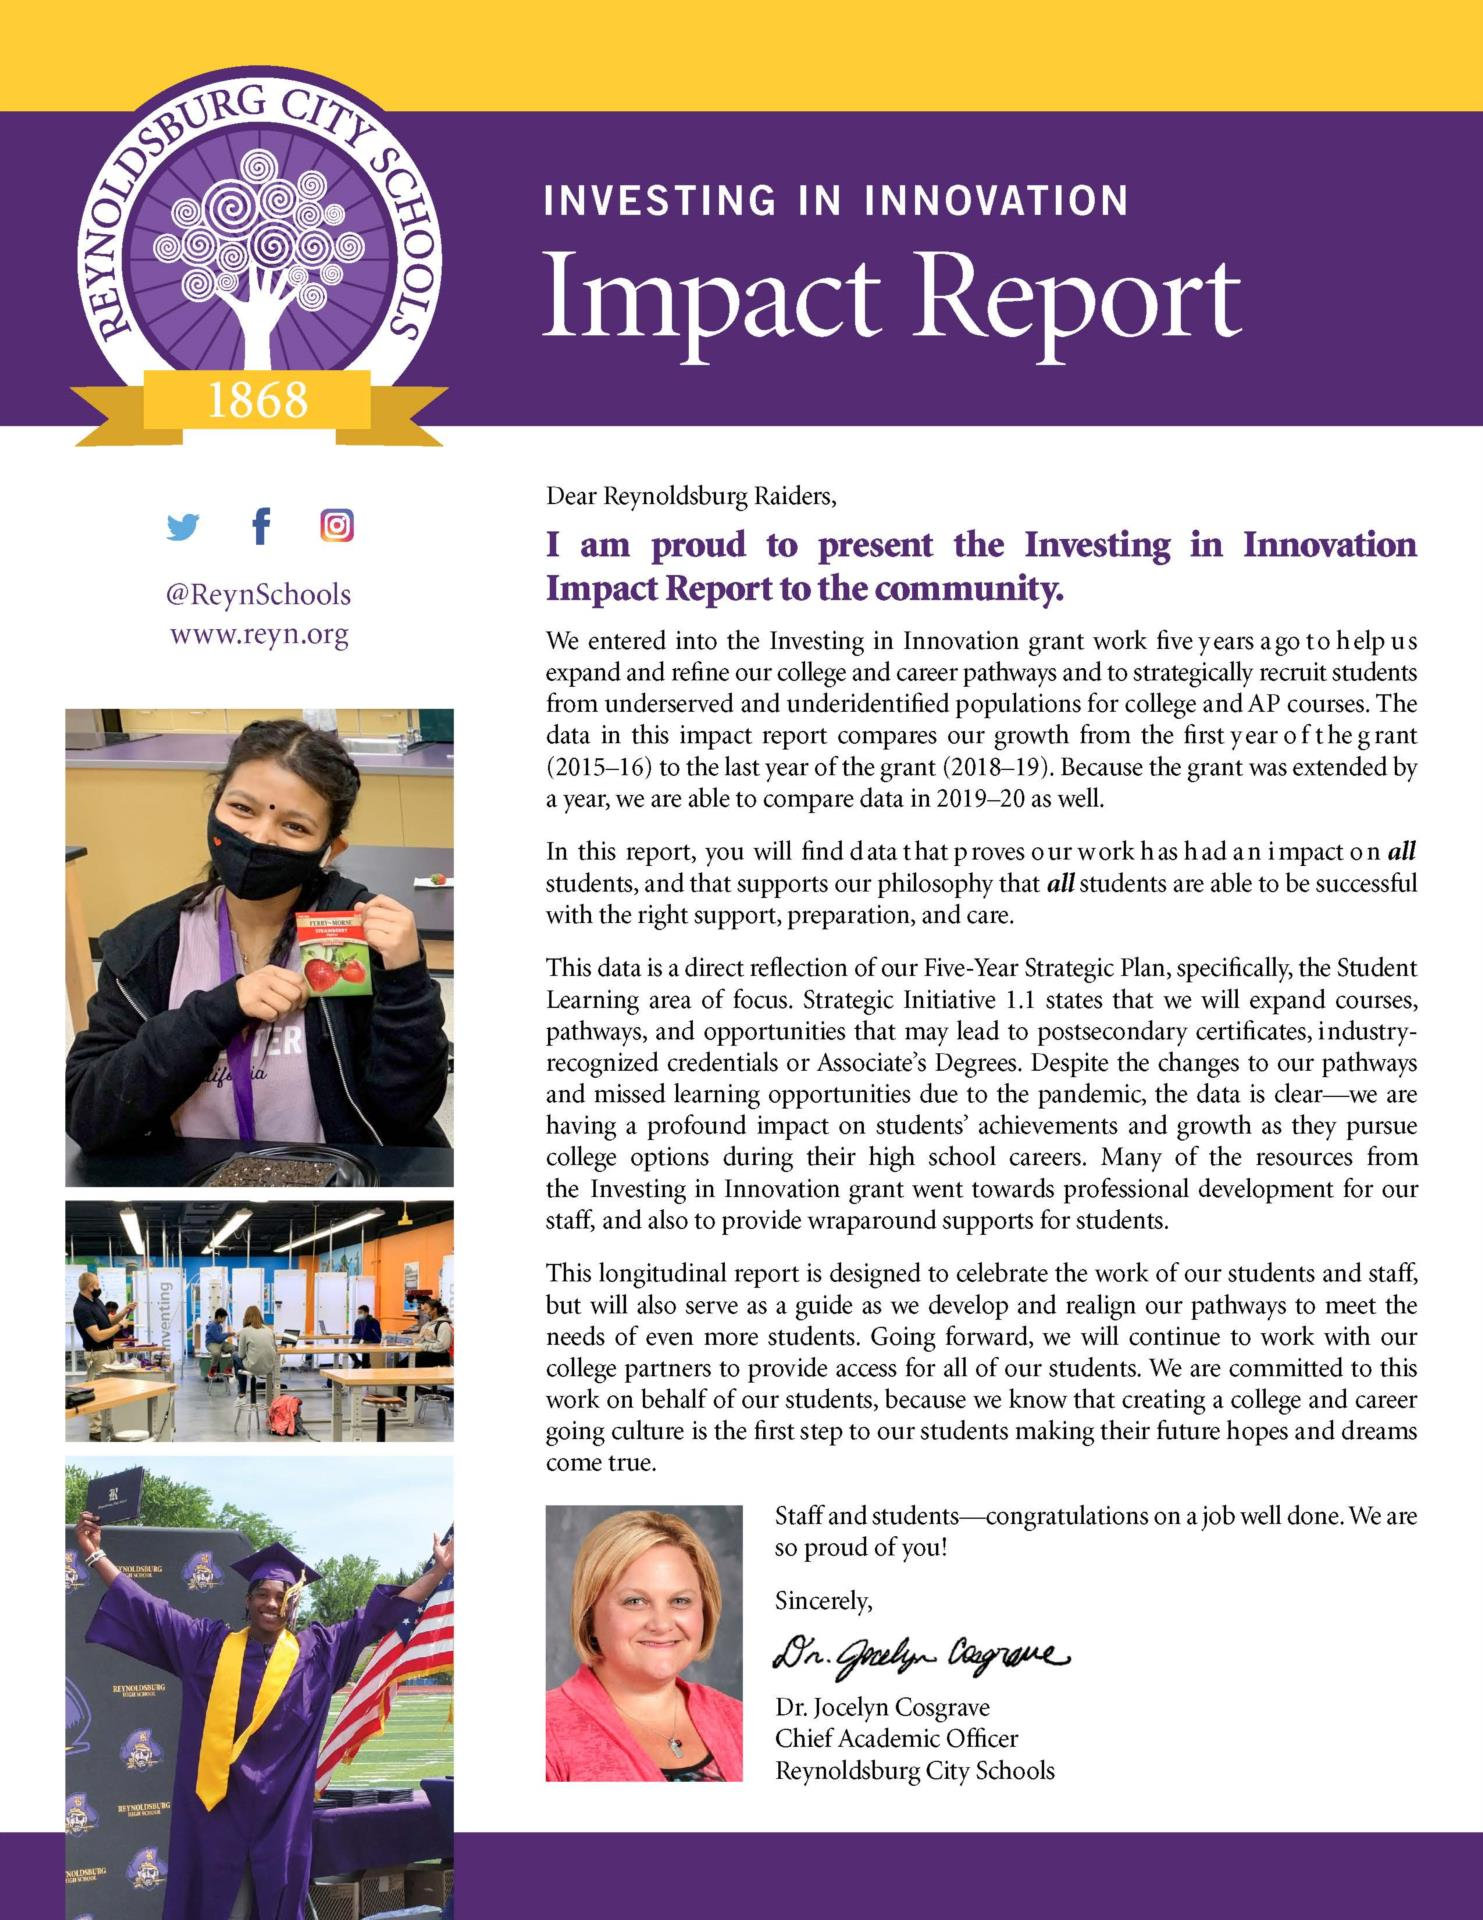 Investing in Innovation Impact Report